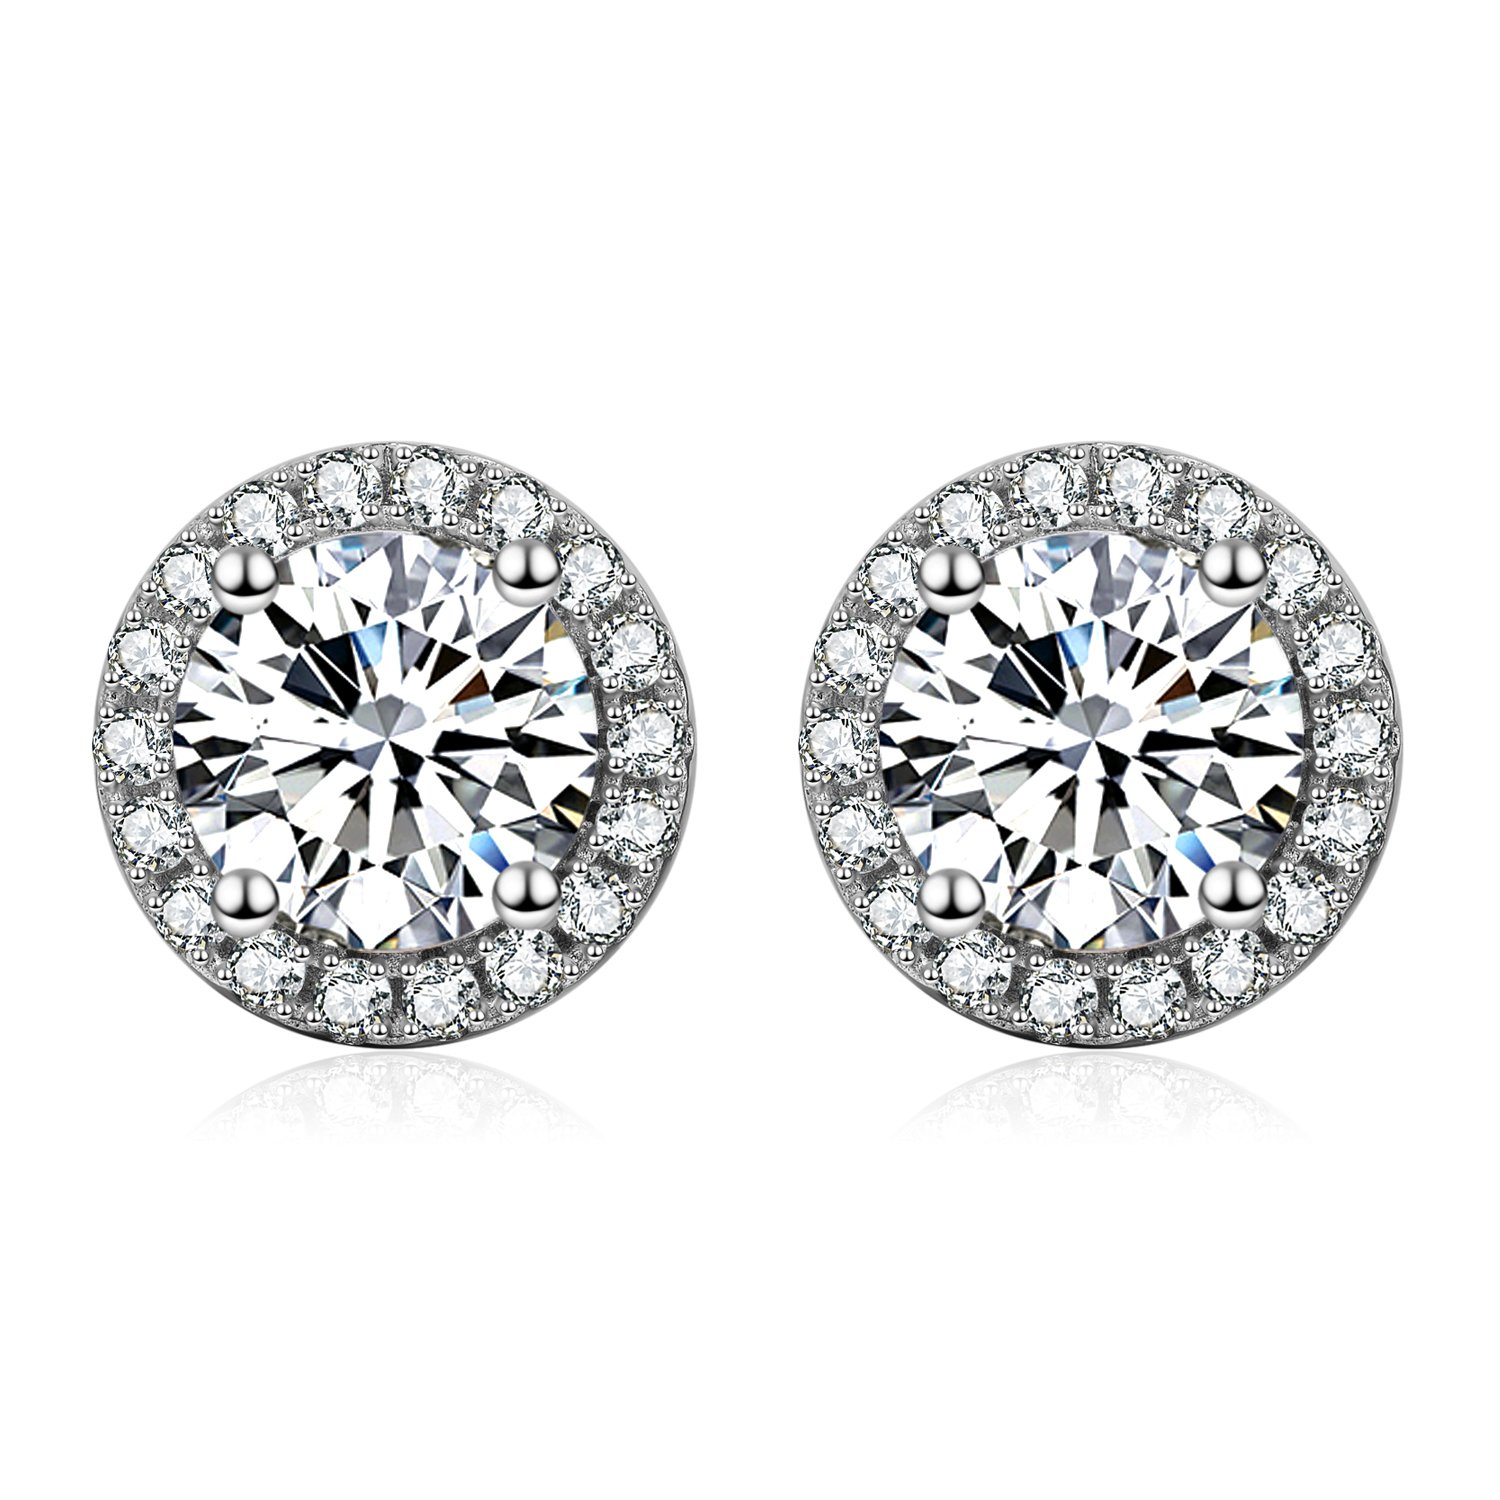 YFN Platinum-Plated Sterling Silver Round-Cut Cubic Zirconia Halo Stud Earrings by YFN (Image #1)